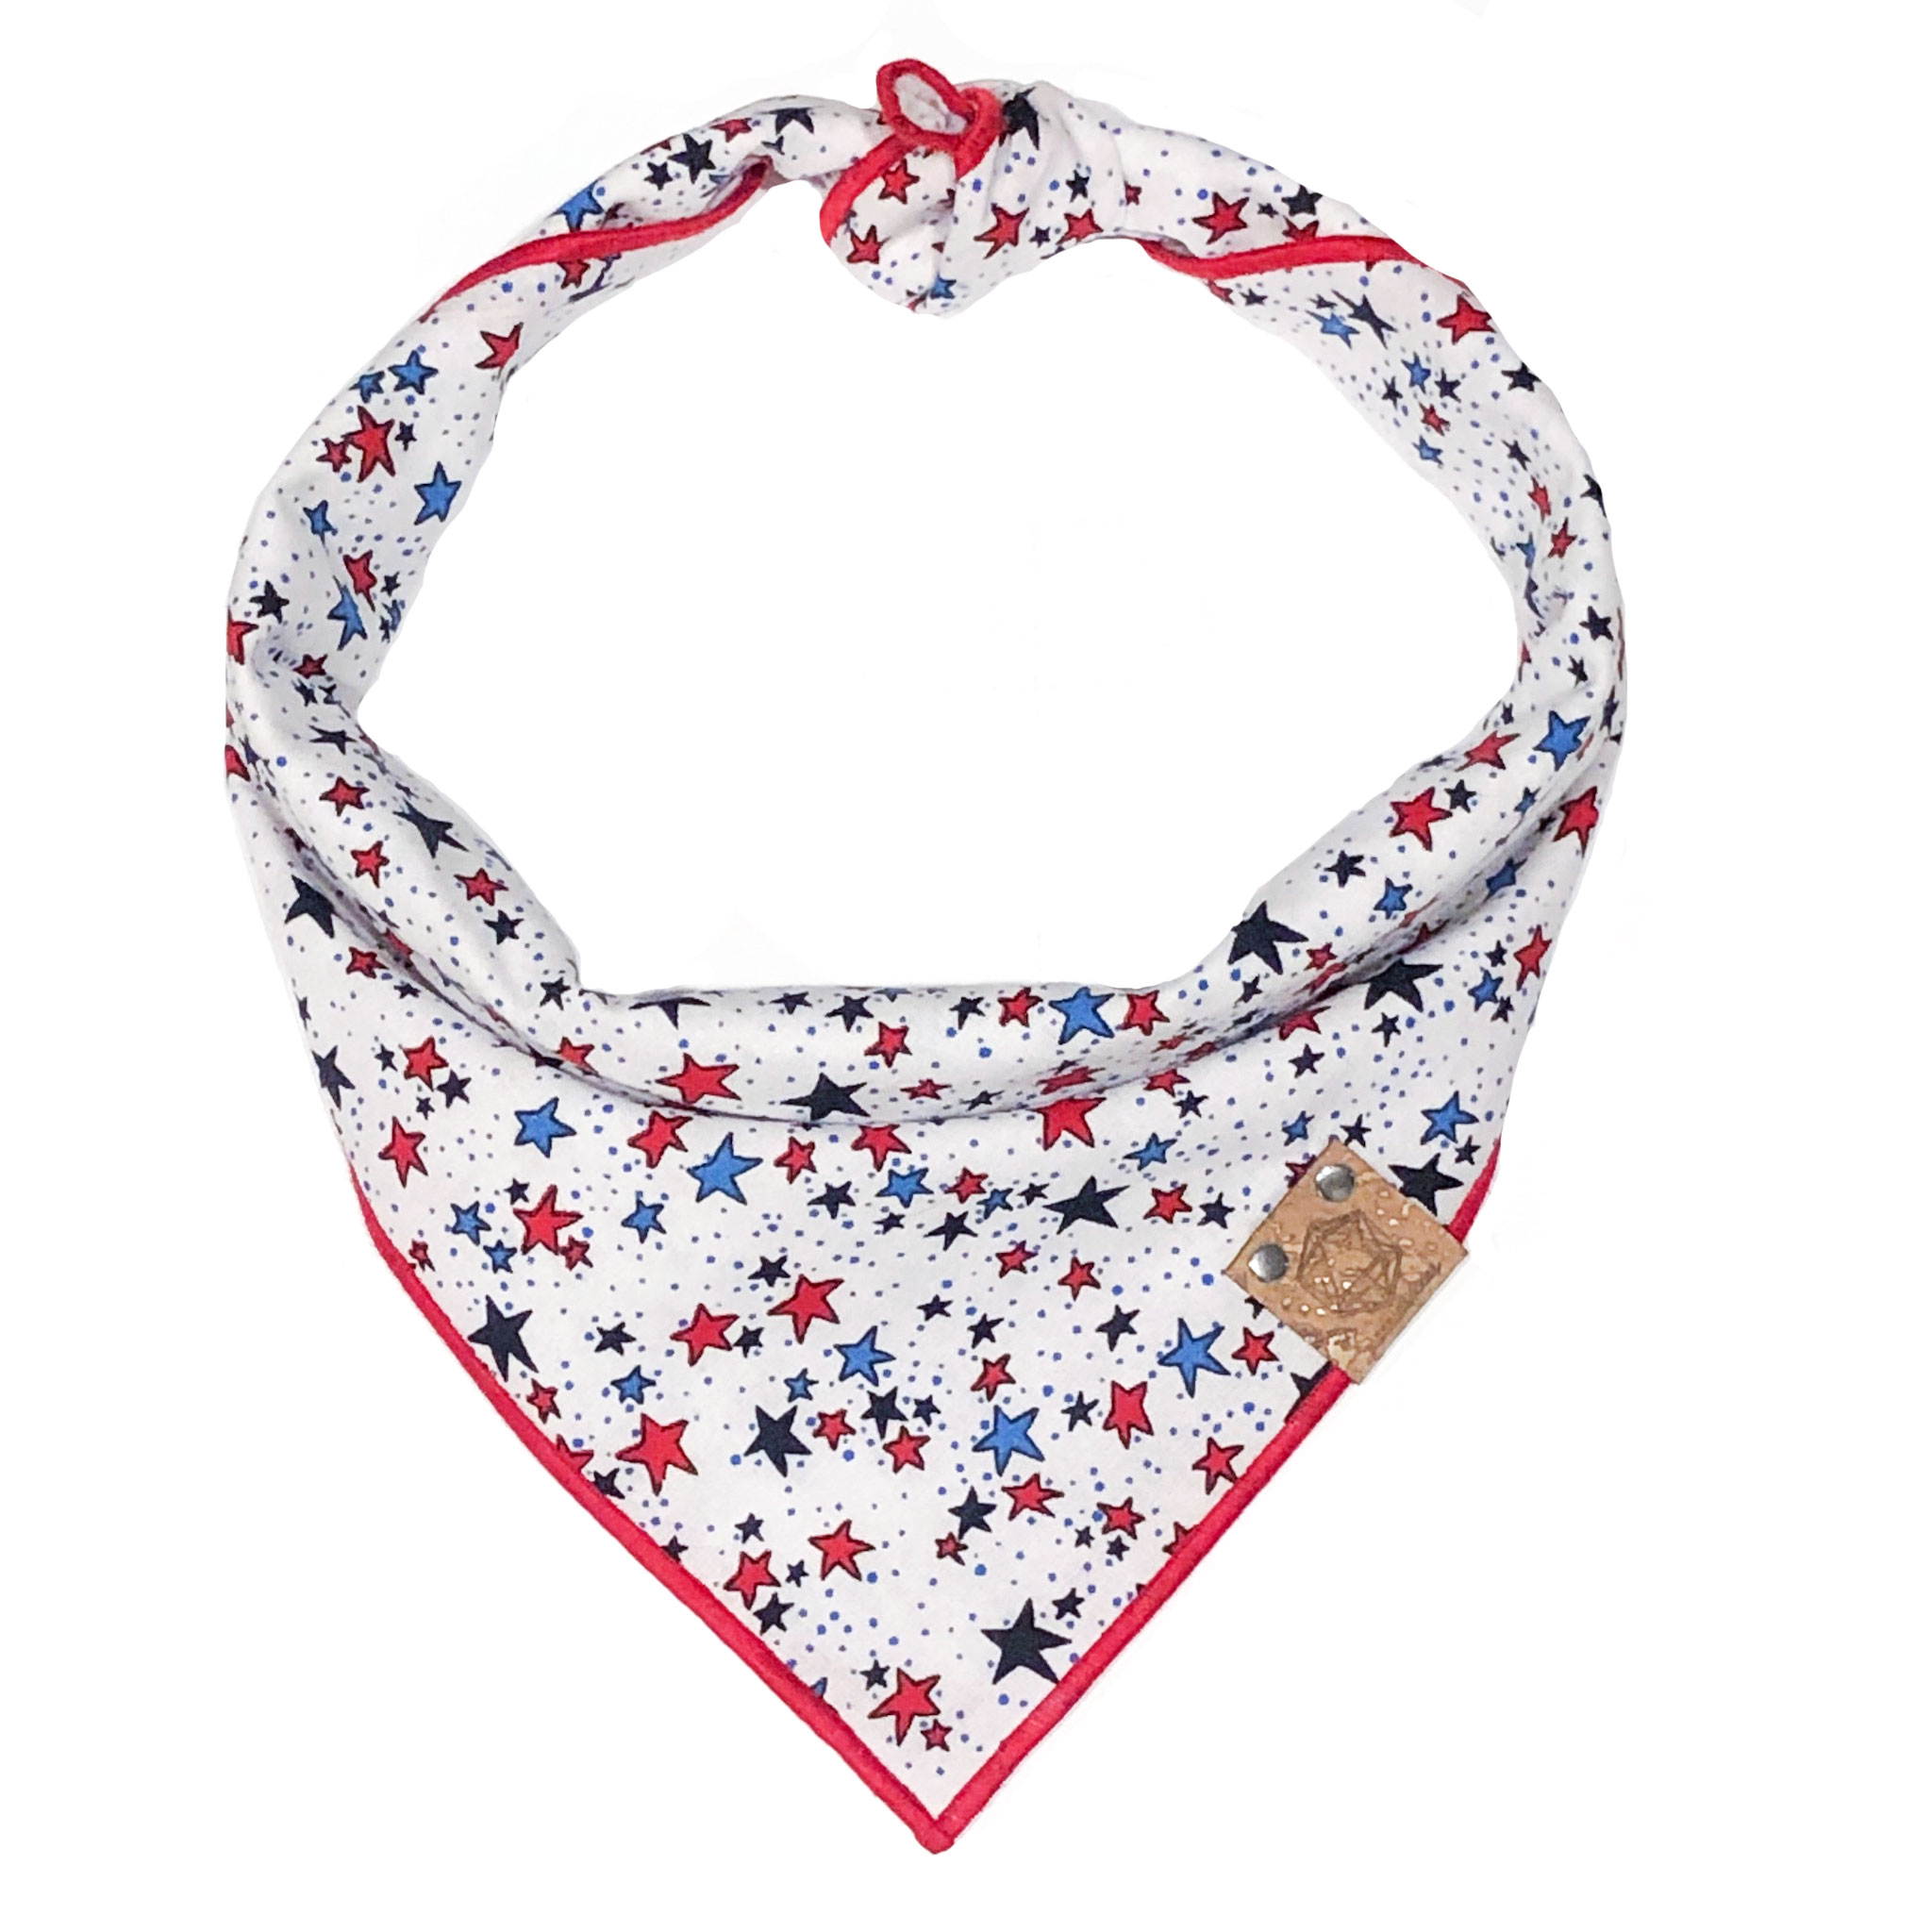 tiny-stars-dog-bandana-for-amazon.jpg